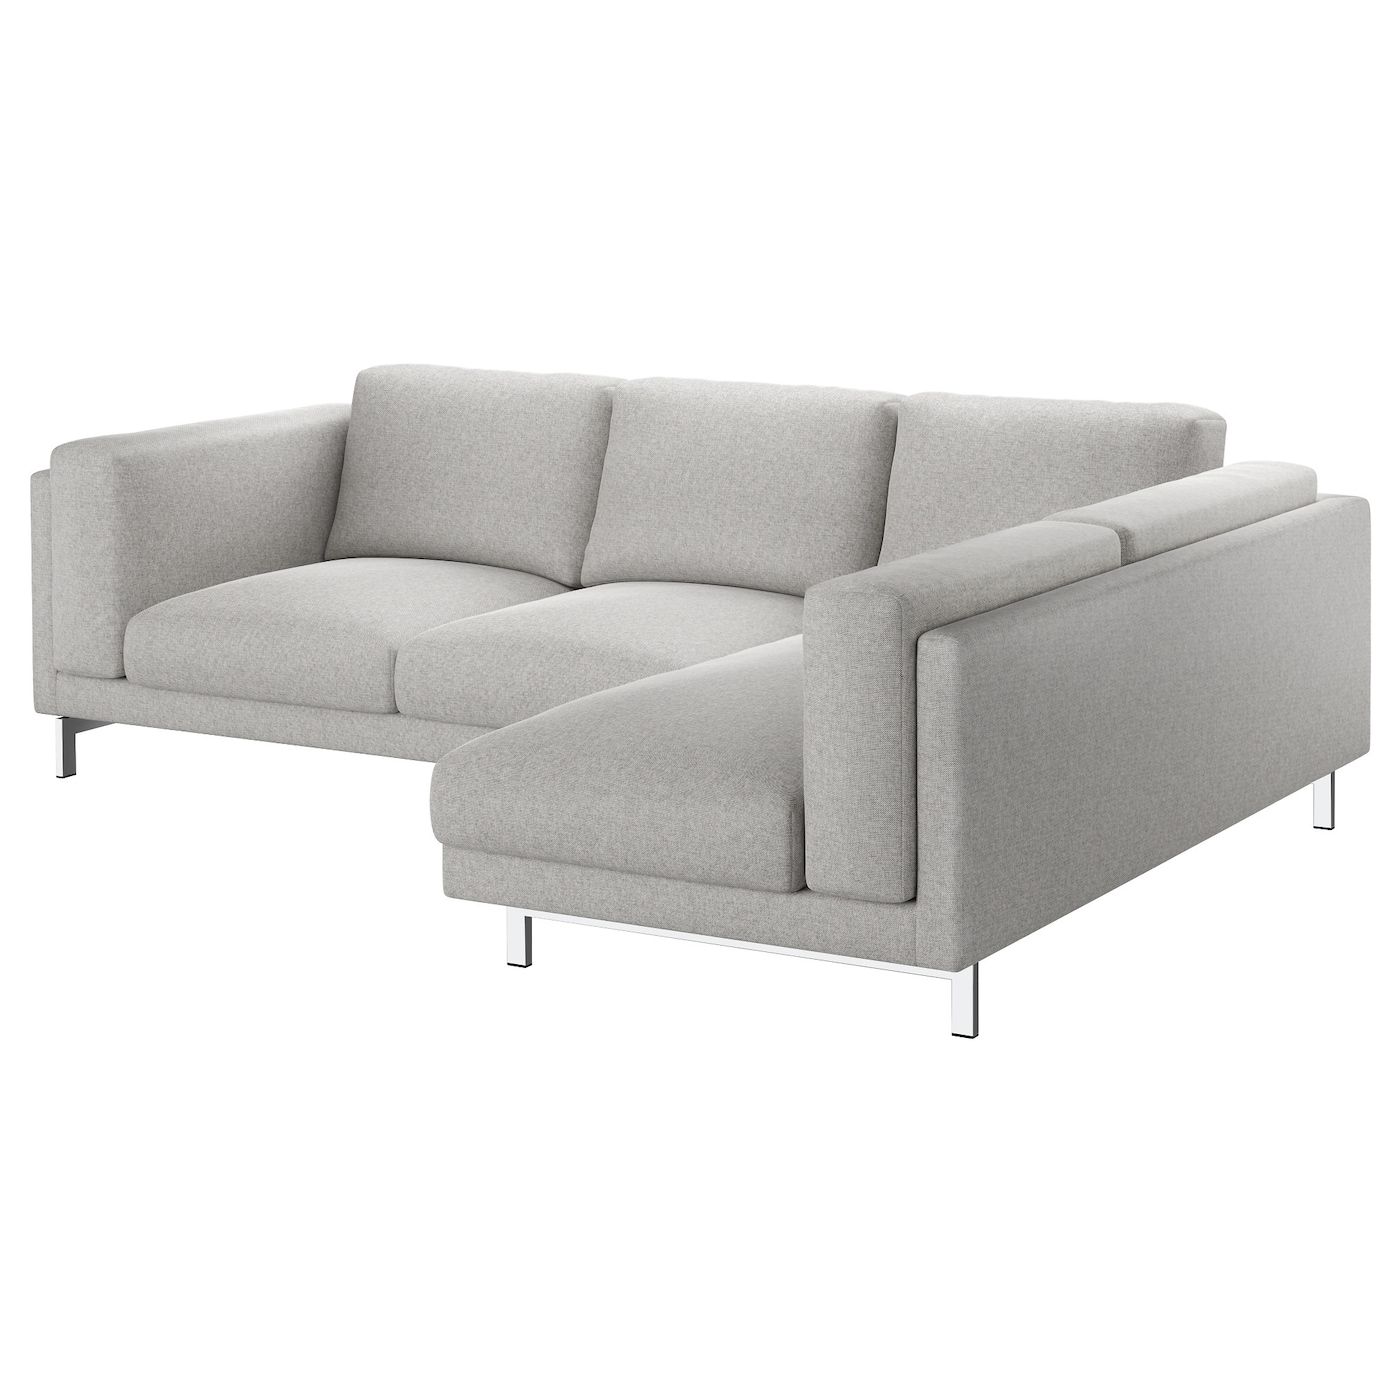 Nockeby two seat sofa w chaise longue right tallmyra white - Sofa rinconera con chaise longue ...